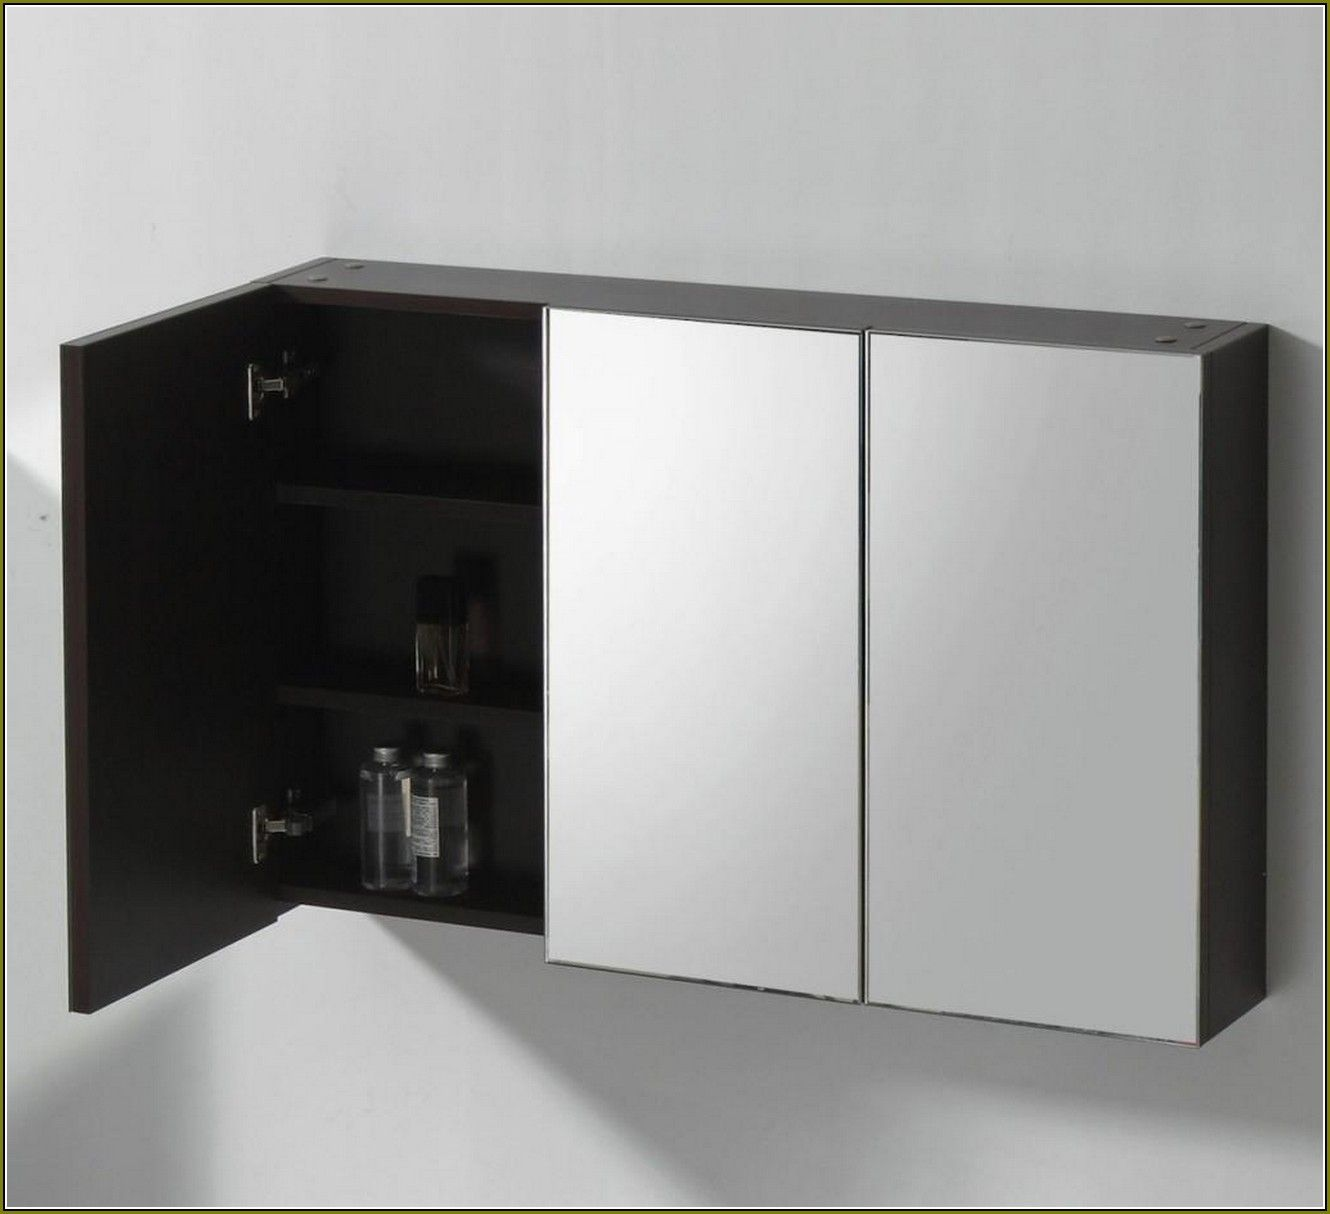 Bathroom Cabinets With 3 Mirrored Doors | Kitchen, Bath & Laundry ...